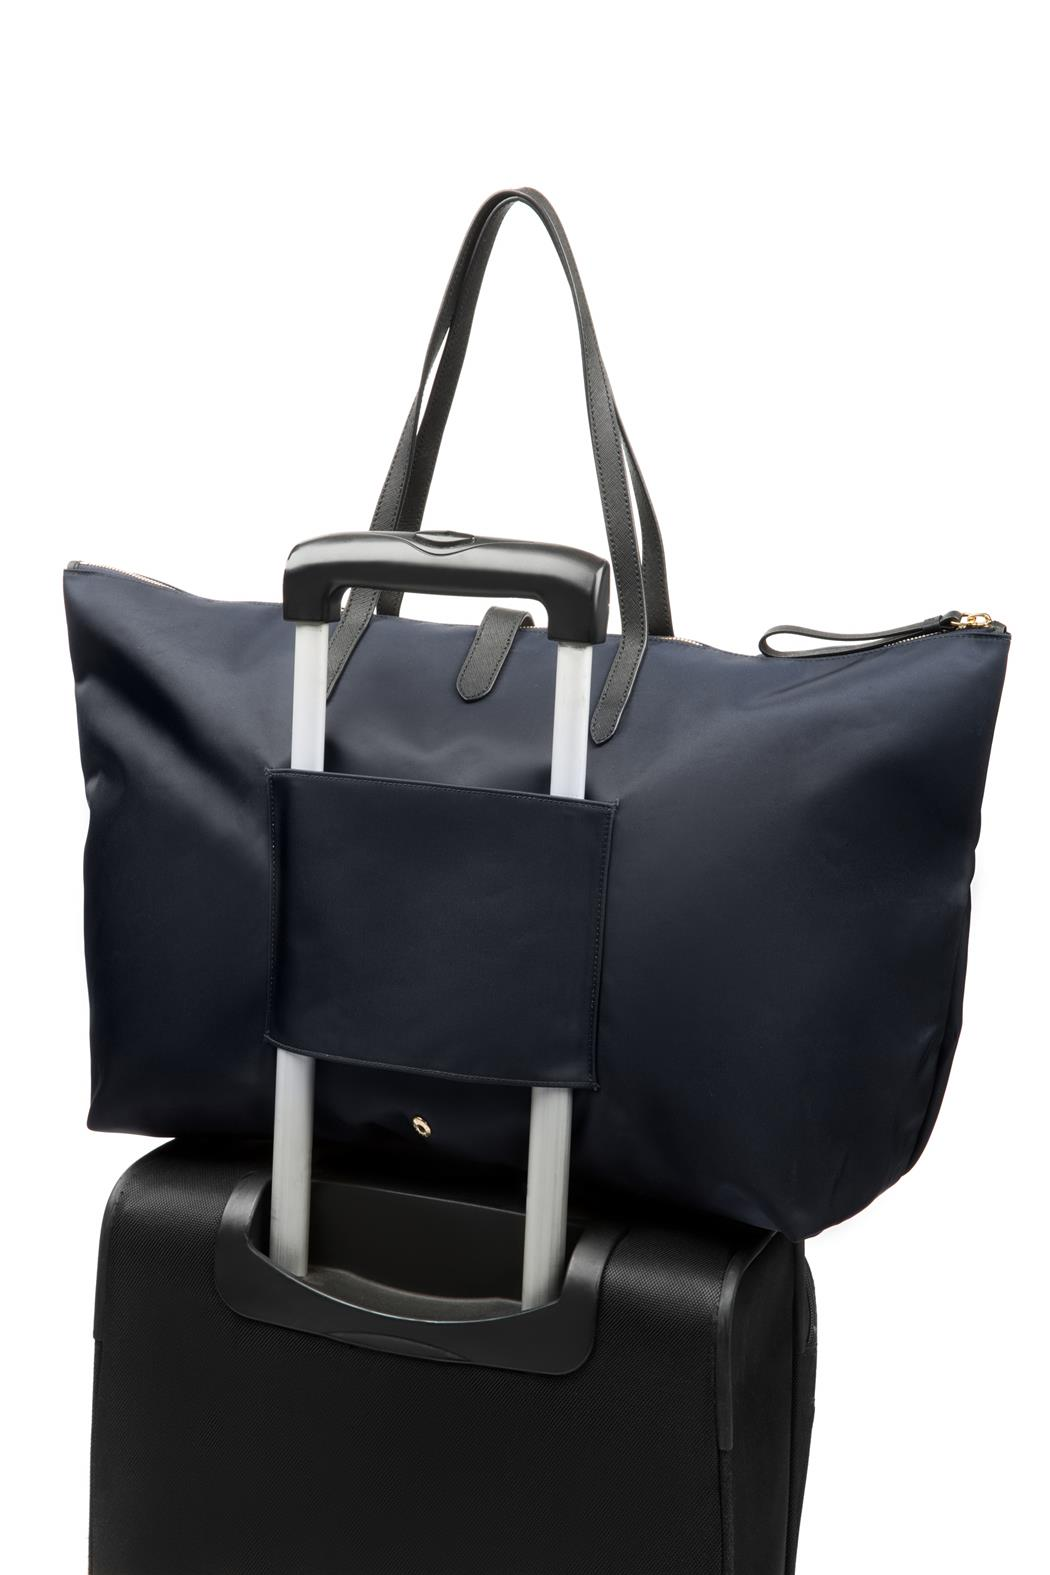 Bally Foldable Tote Temptations Malaysia Airlines